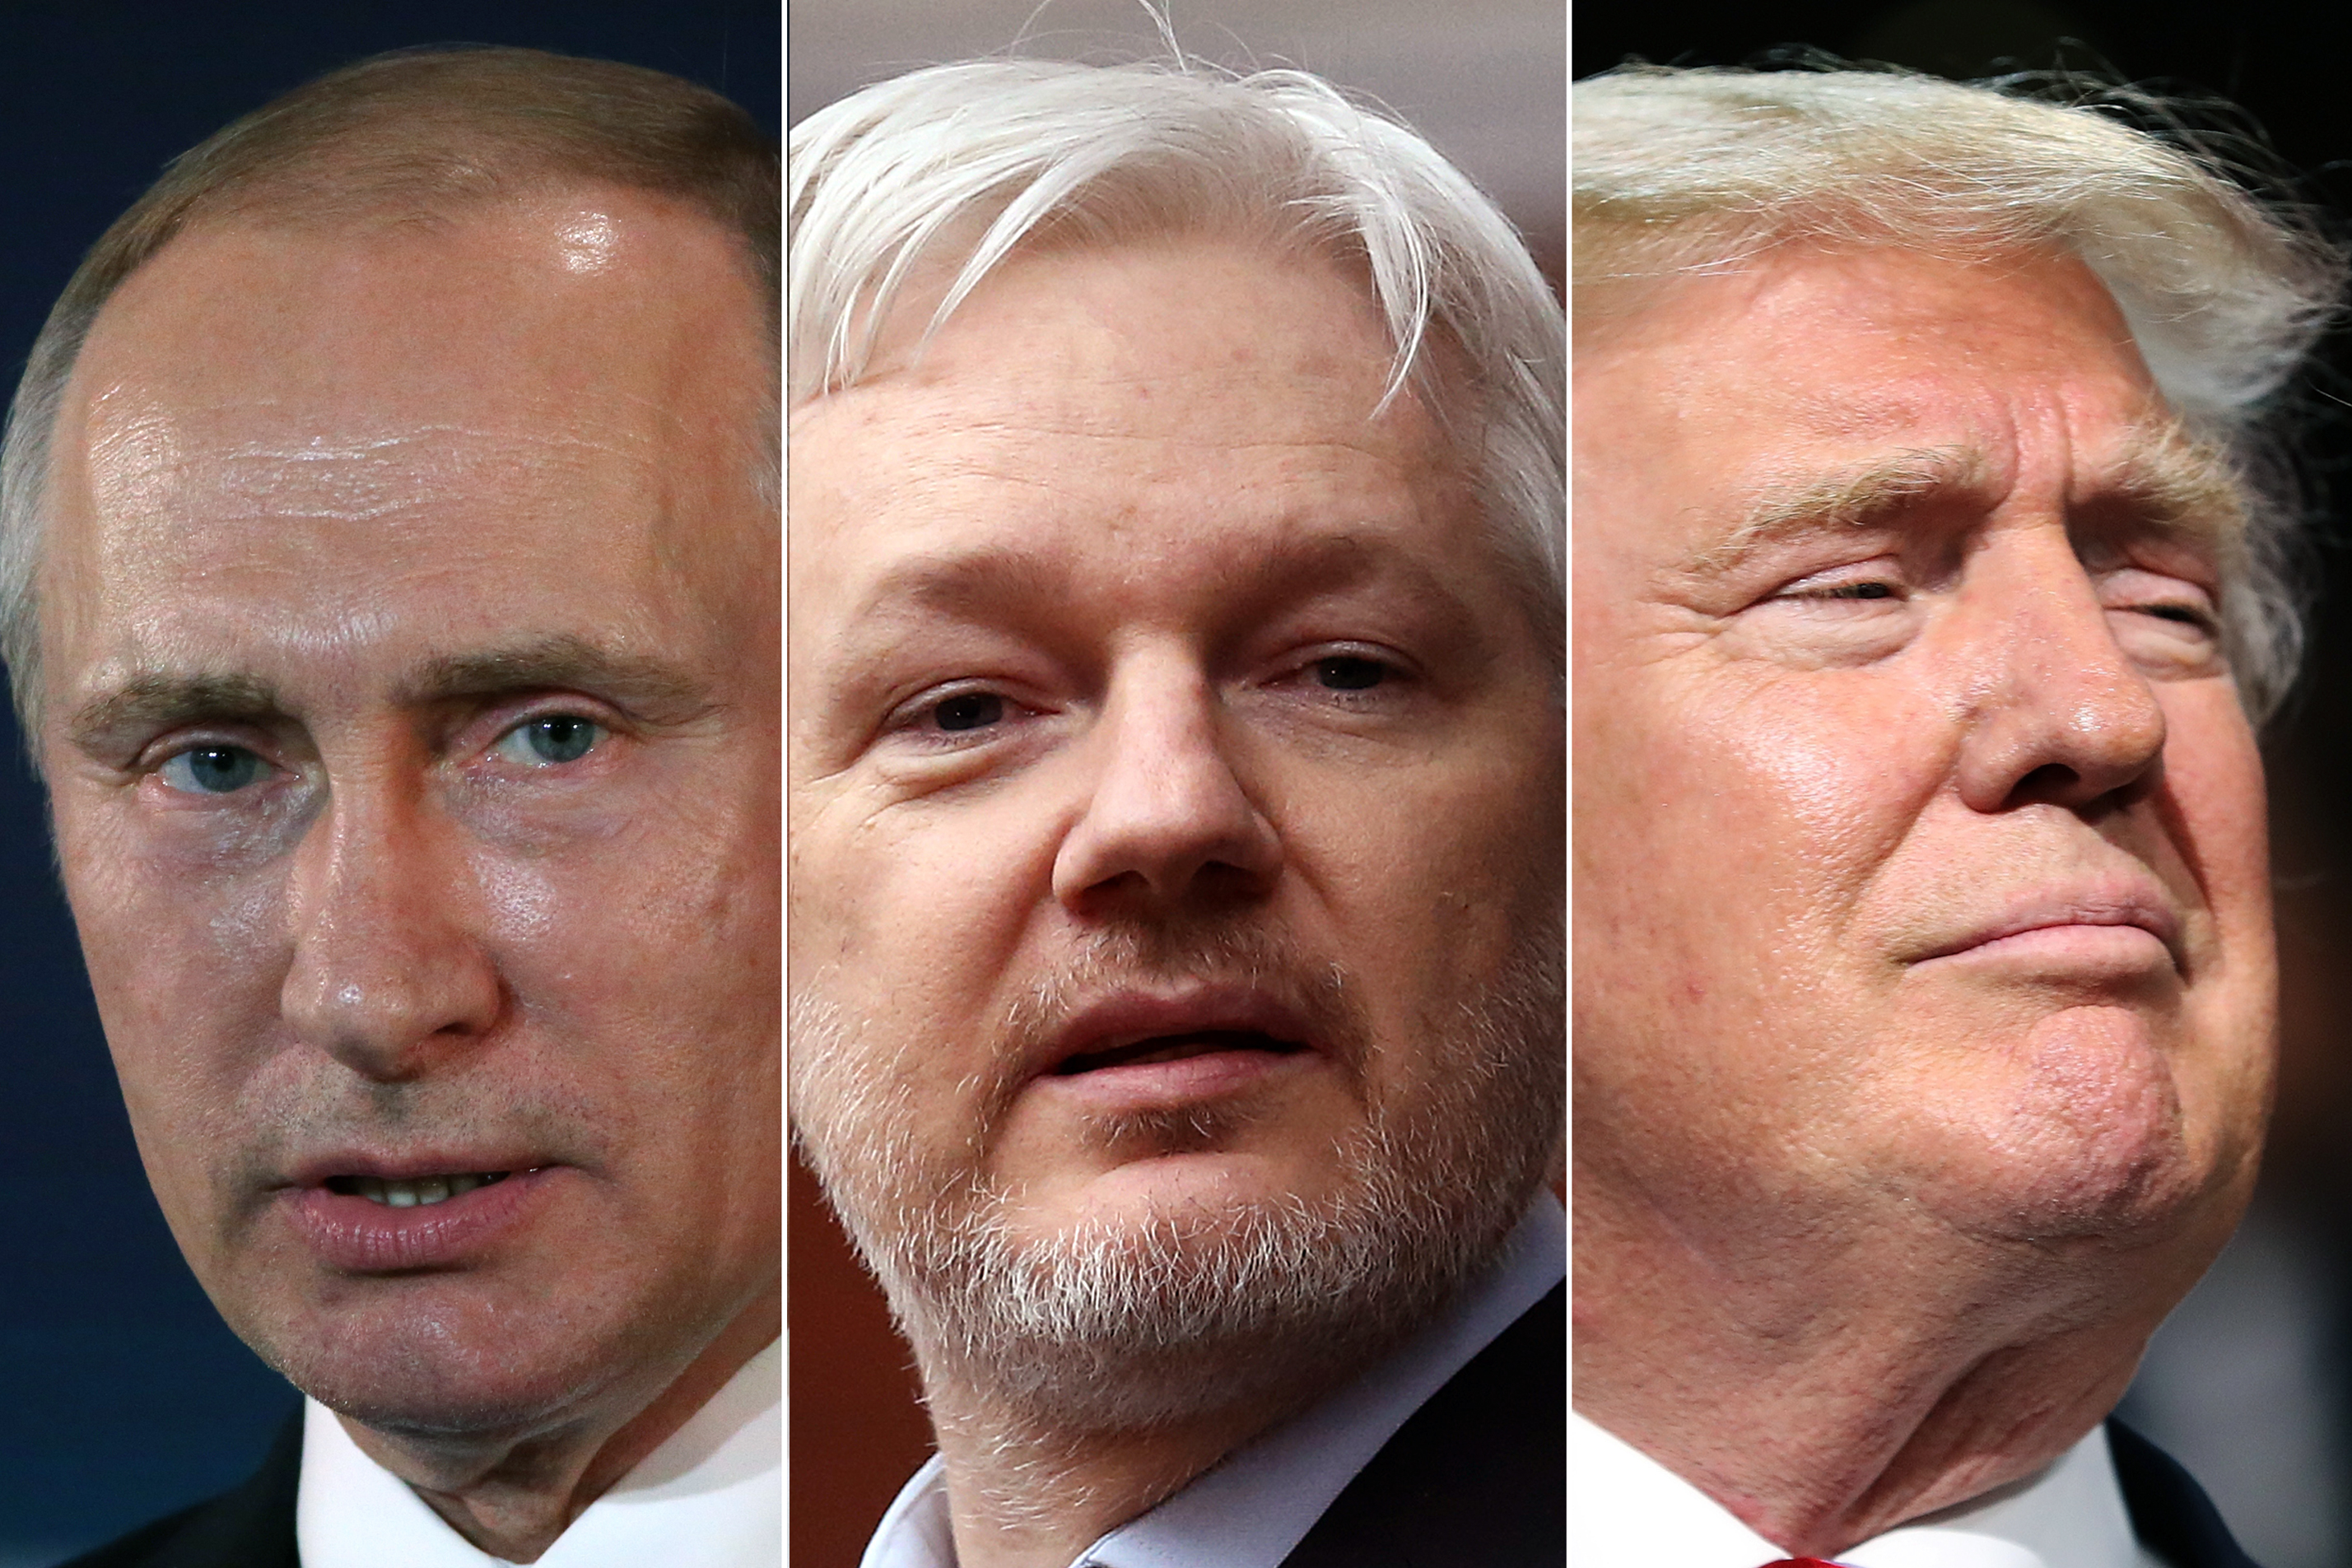 Vladimir Putin in Moscow, in July 2016 (L); Julian Assange in the balcony of the Ecuadorian Embassy in London, in Feb. 2016 (C); Donald Trump in Cleveland, OH, in July 2016 (R).